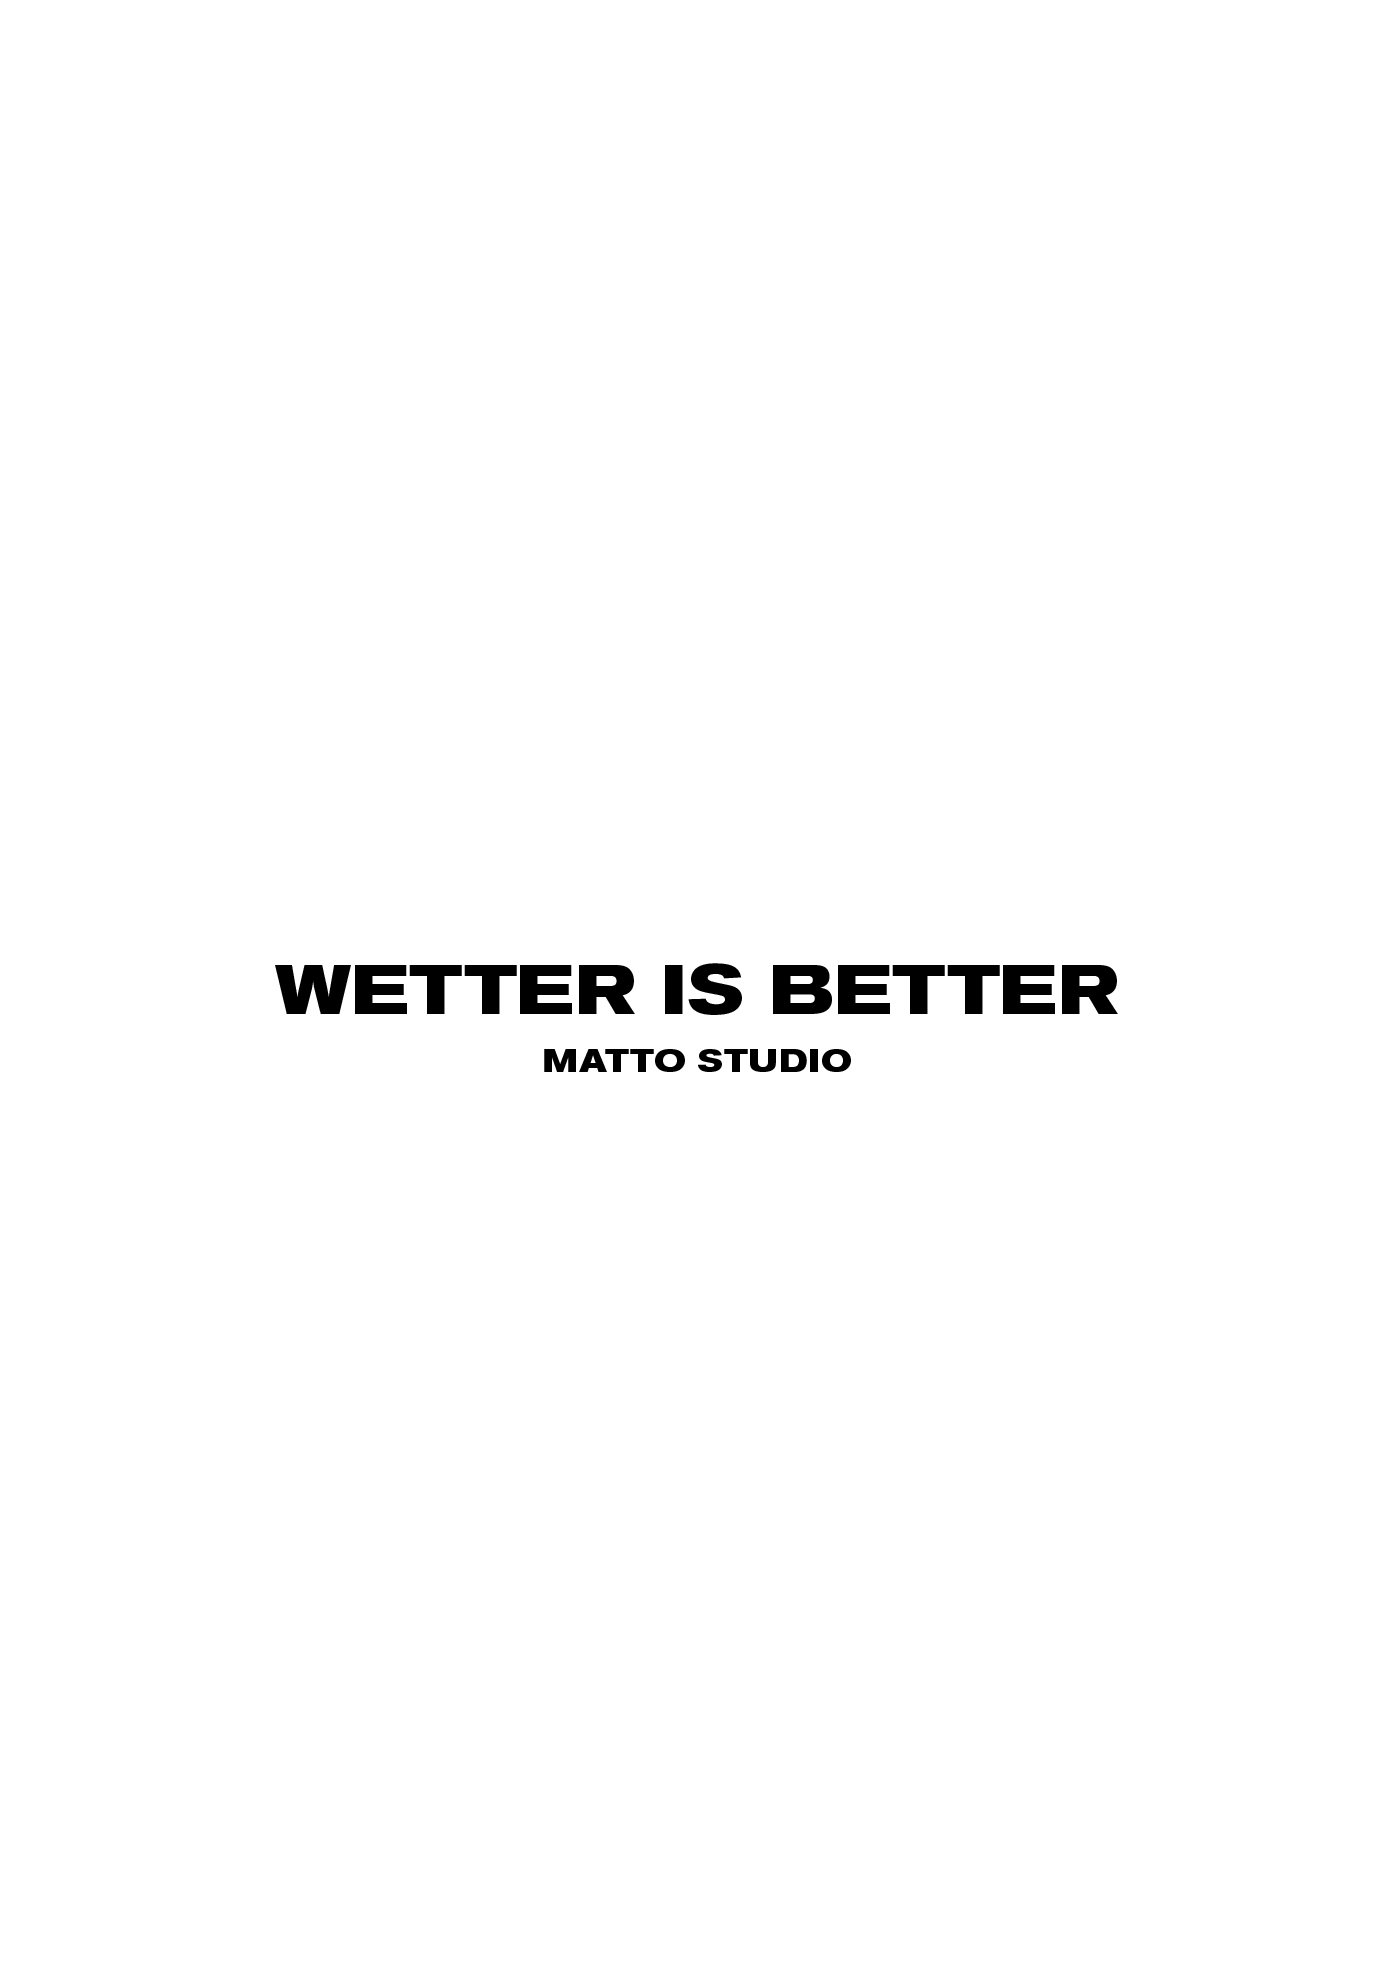 WETTER IS BETTER text